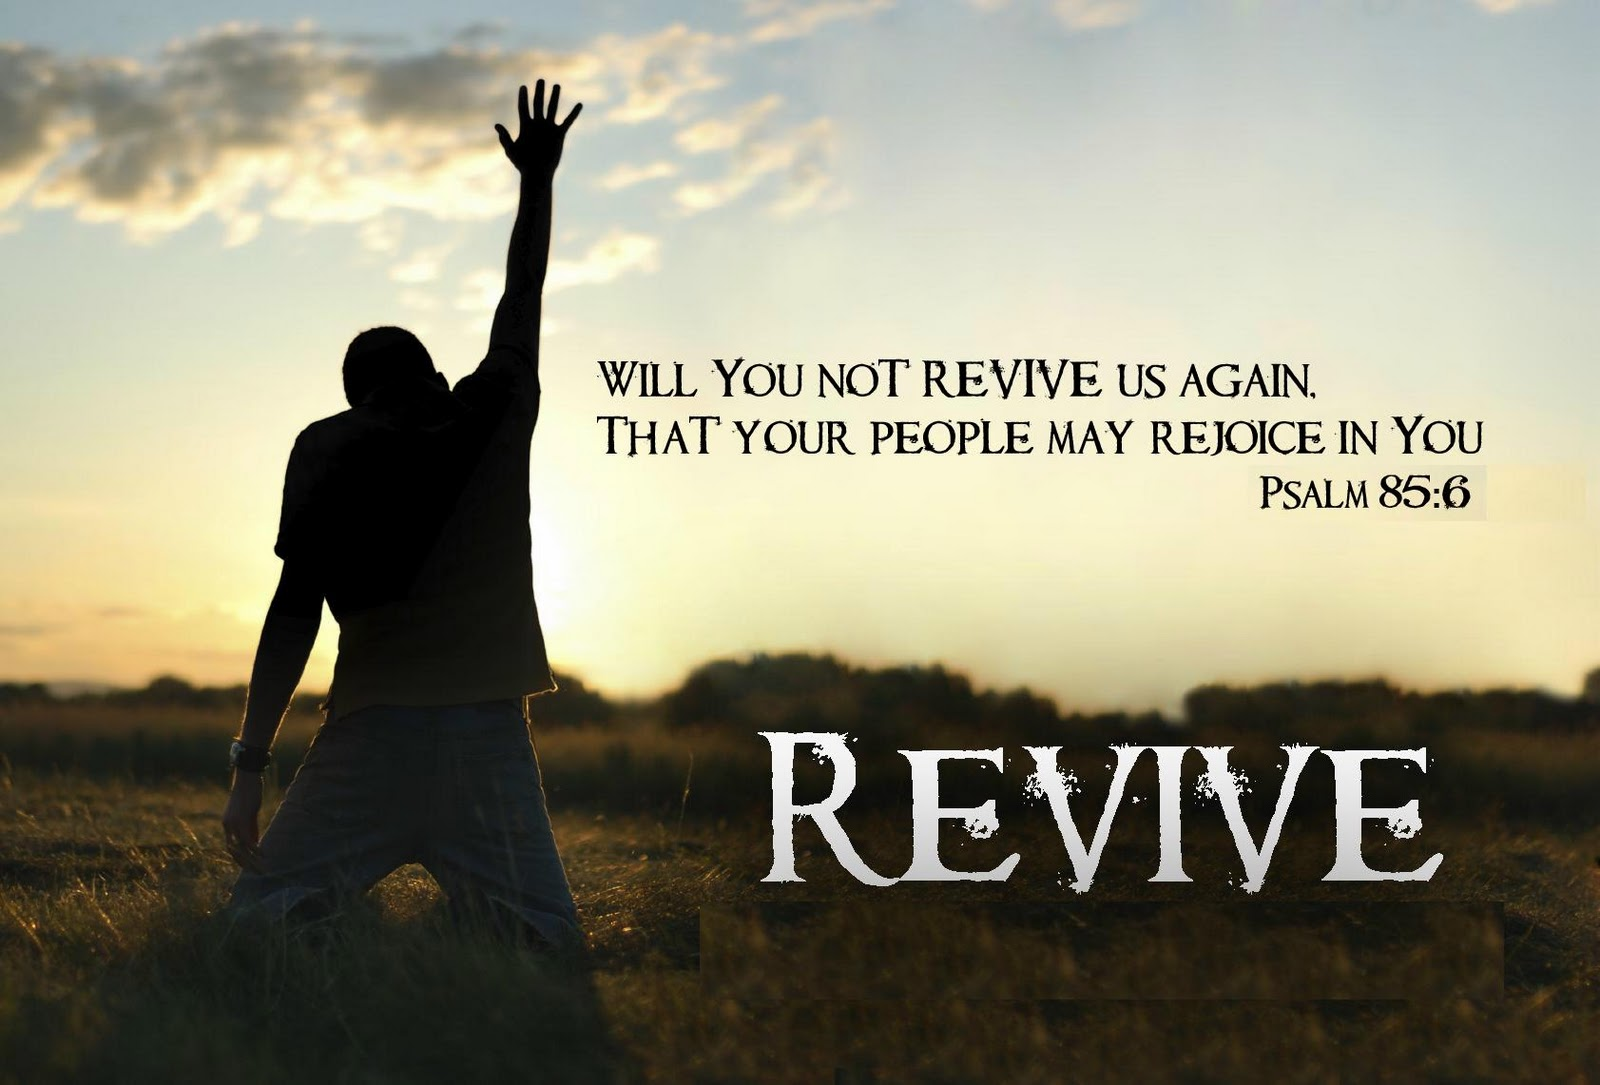 http://godspeaksilisten.files.wordpress.com/2011/11/revival-best-best.jpg